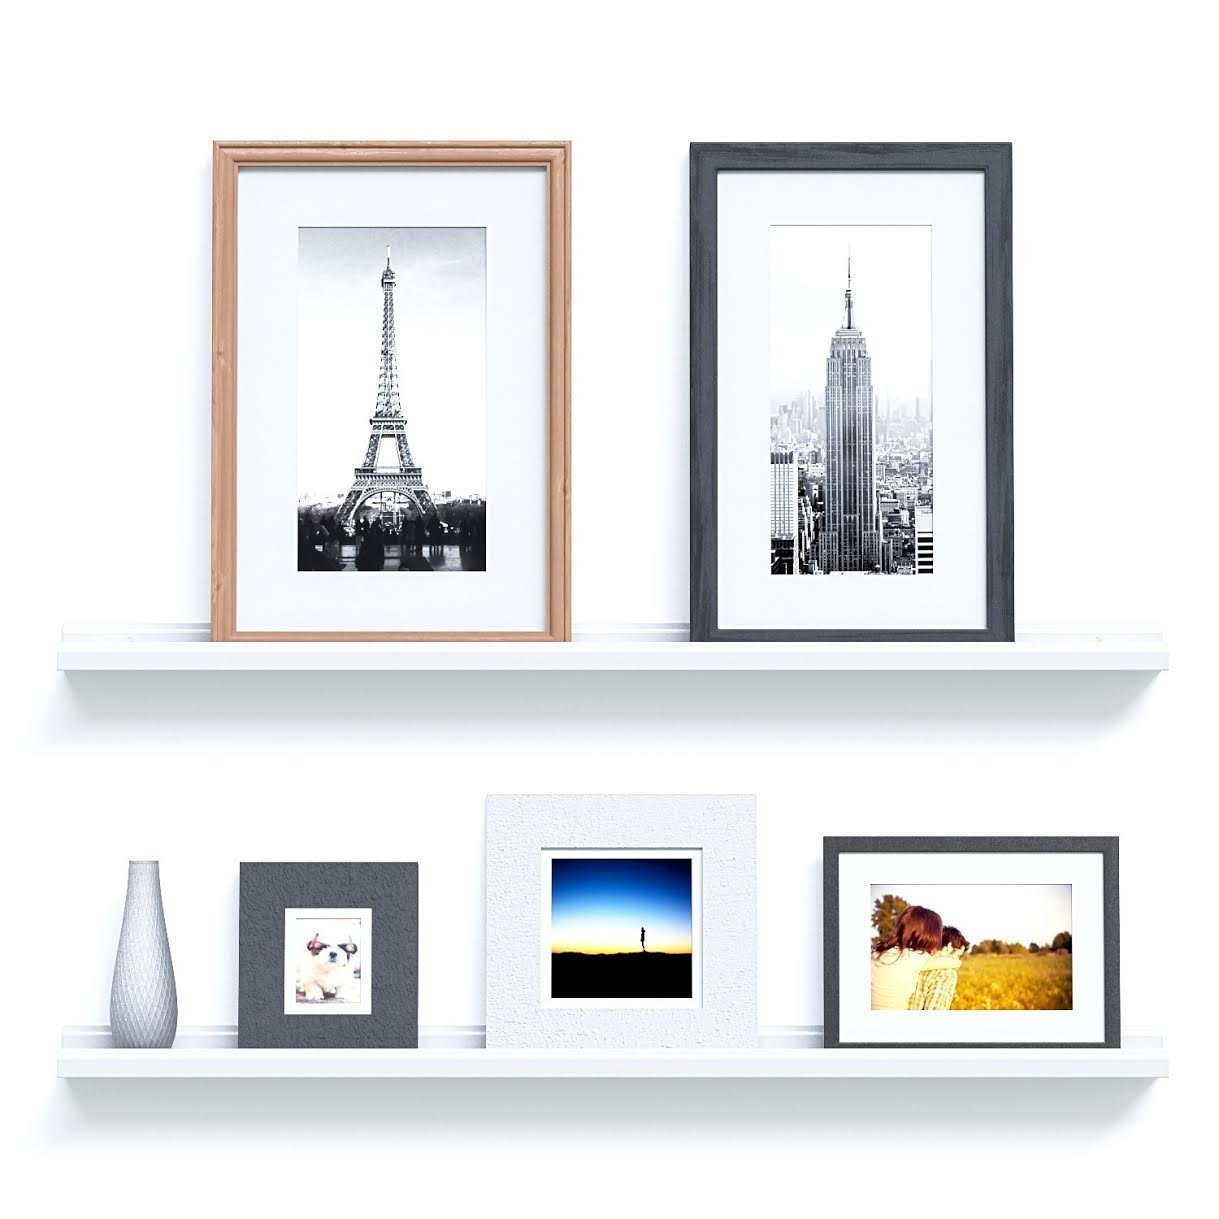 Dtemple Modern Wall-Mounted Floating Ledge Display Wall Shelf Storage for Photo Picture Frames Book, Floating Wall Photo Ledge Shelves (US STOCK) (White, Small-60CM)